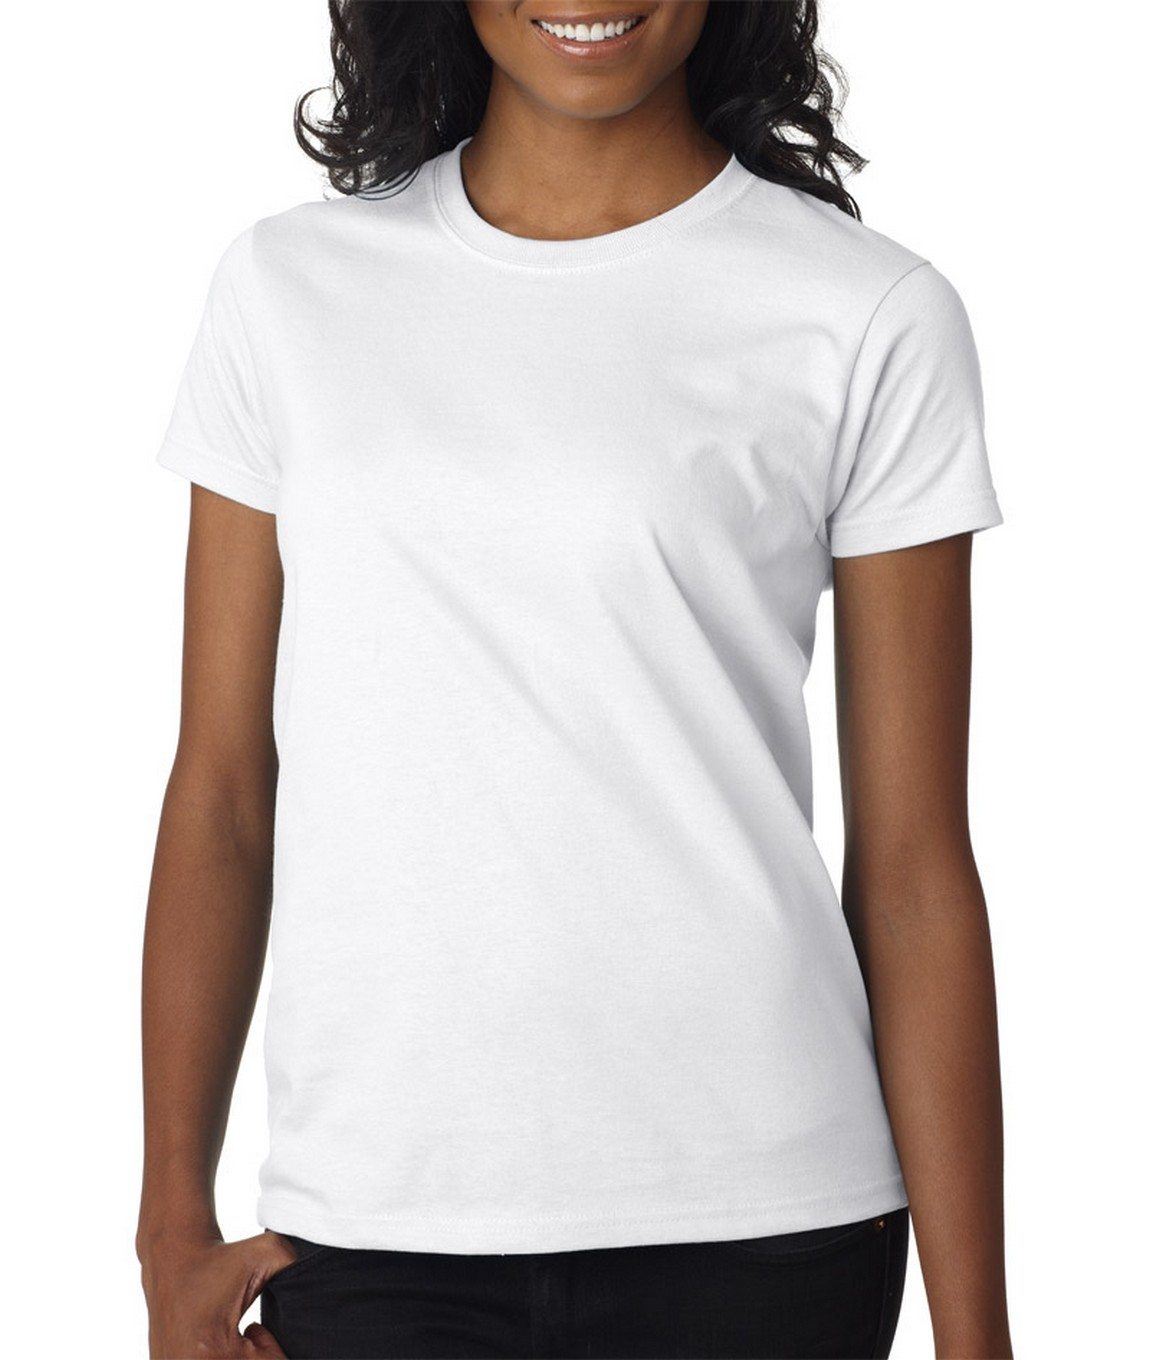 Blank women 39 s white t shirt you customize it for Womens black tee shirt